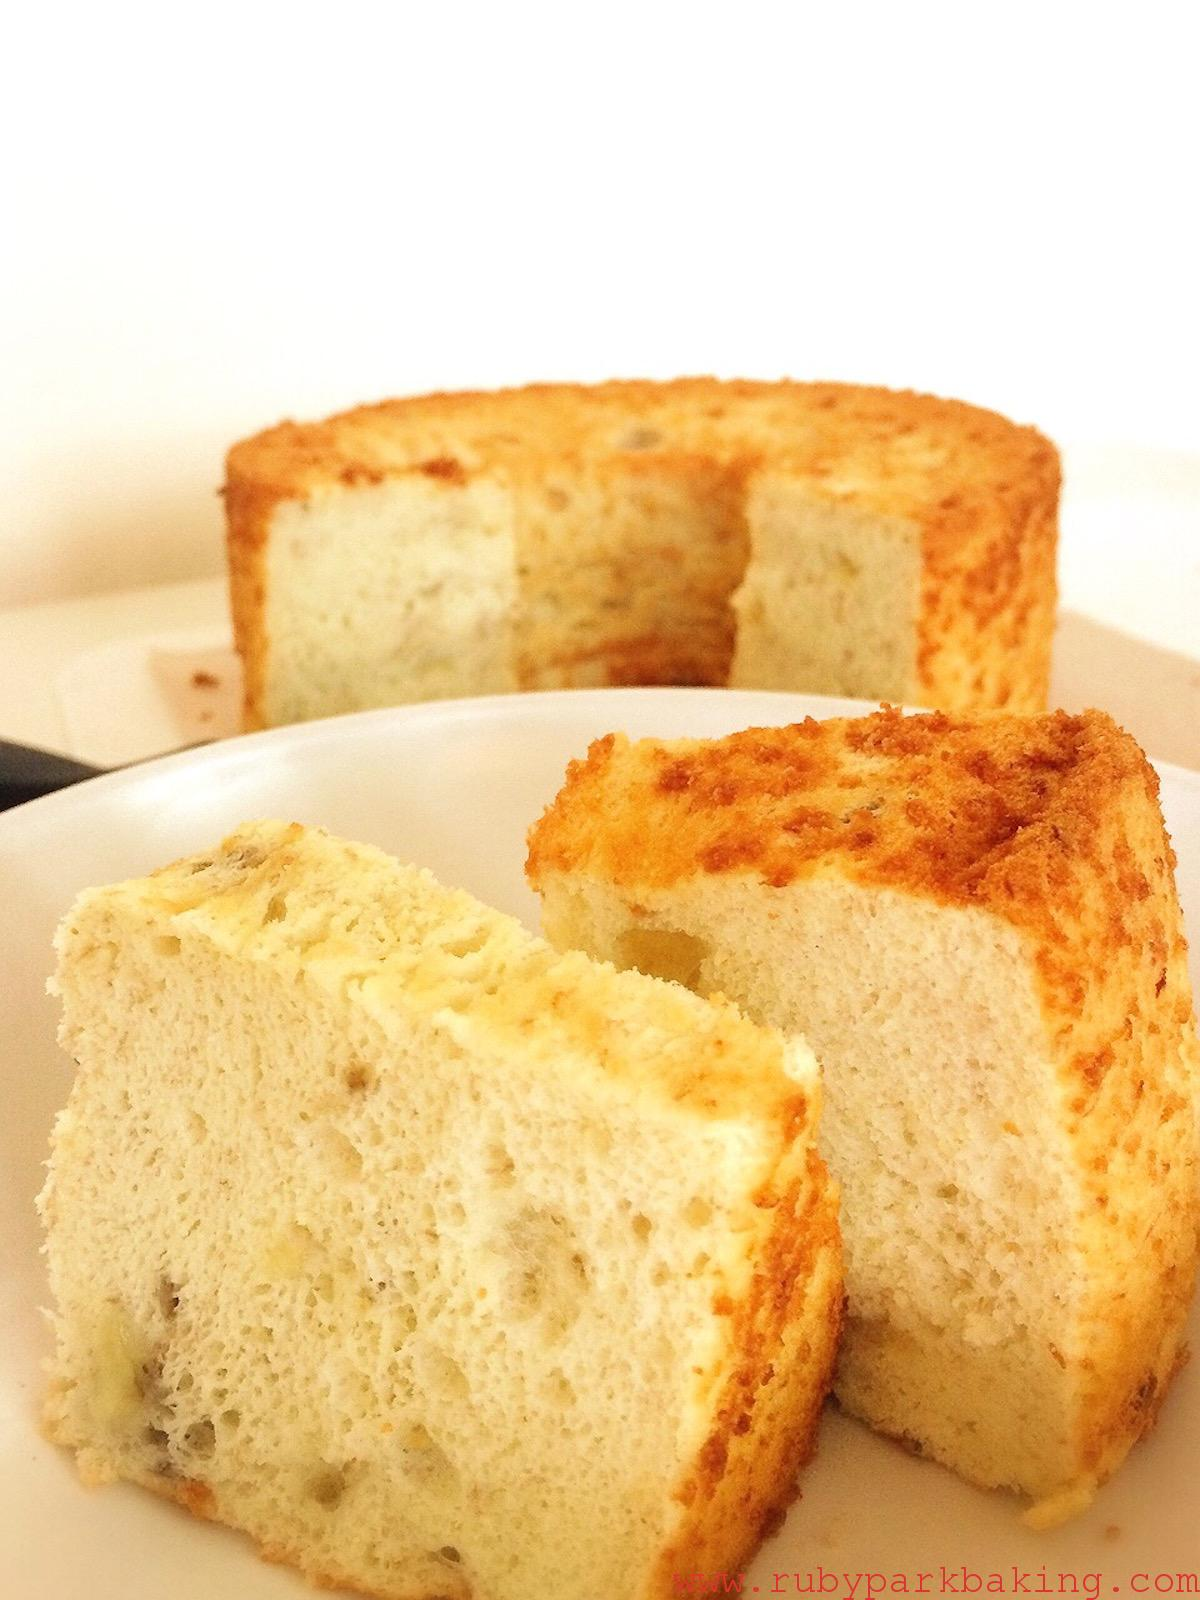 Banana Chiffon Cake made with Rice Flour